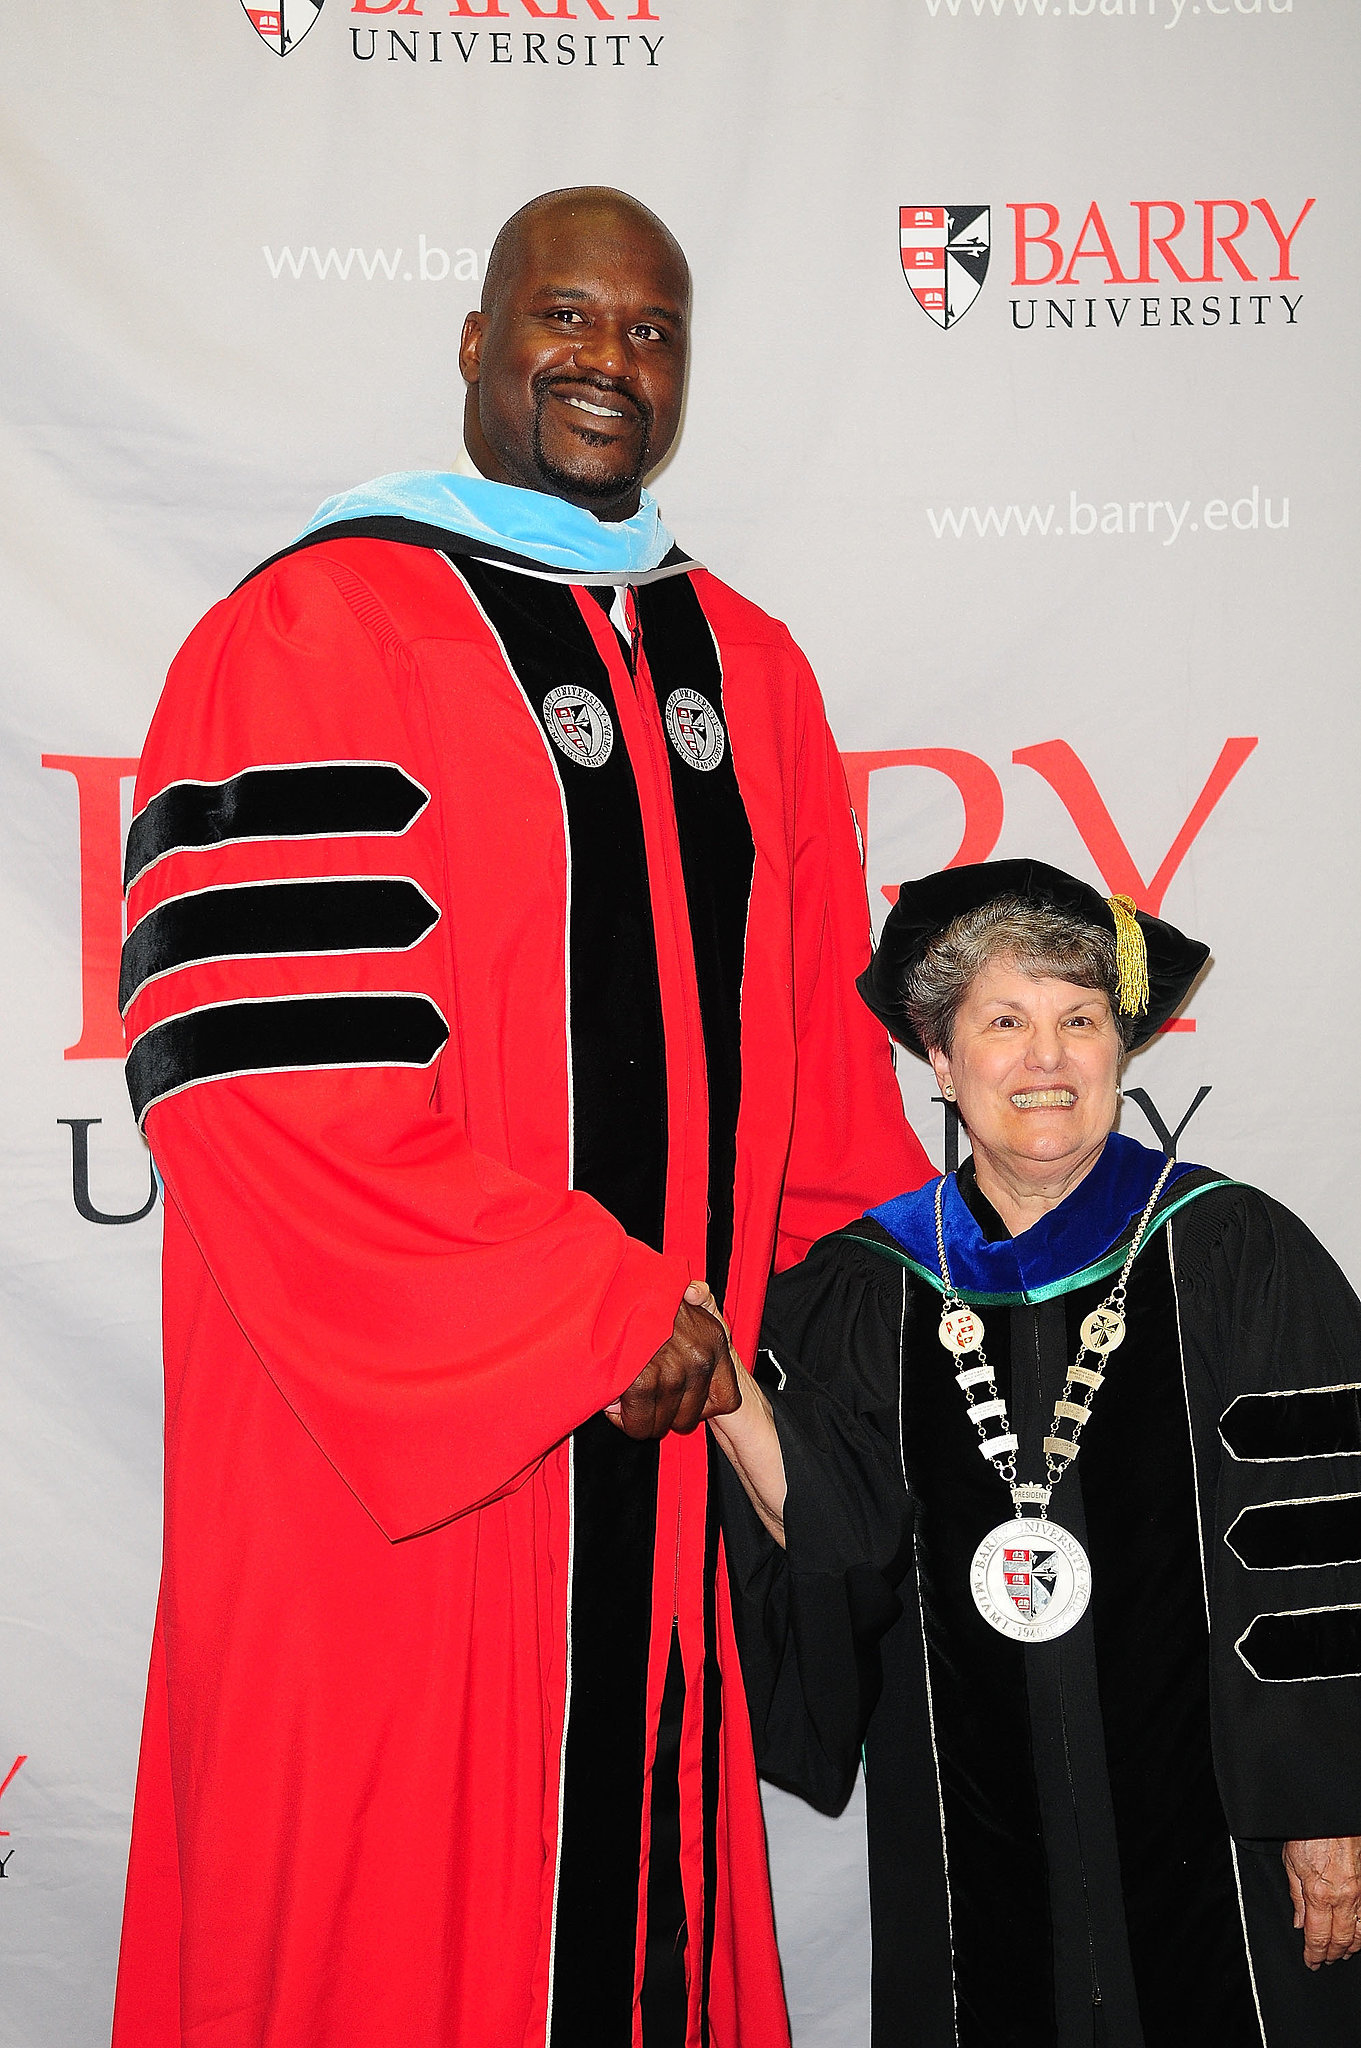 Shaquille o neal dissertation